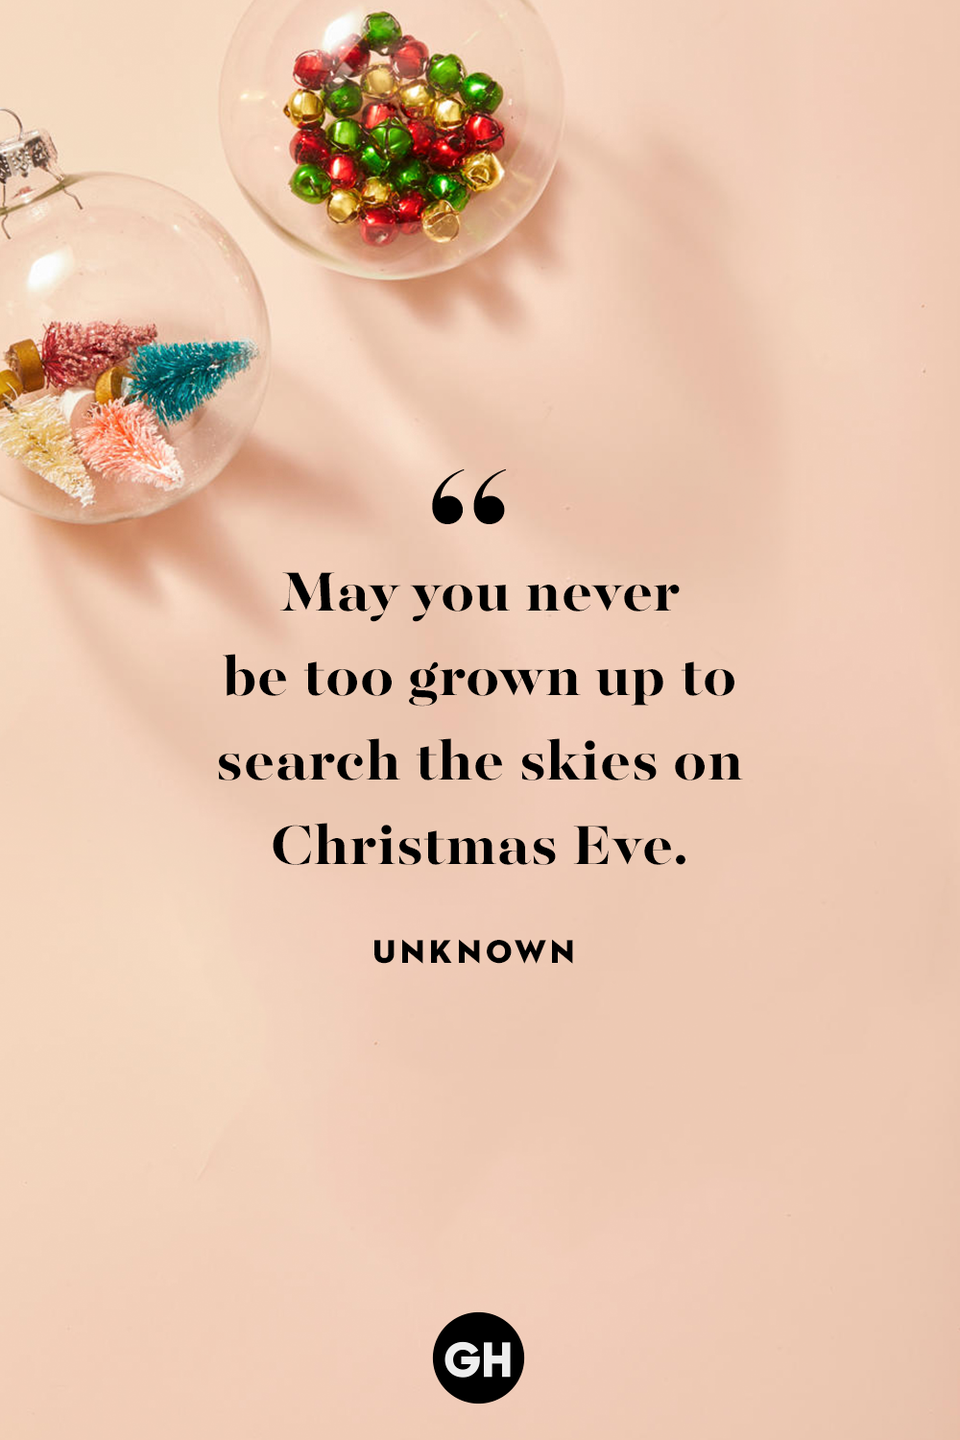 <p>May you never be too grown up to search the skies on Christmas Eve. </p>